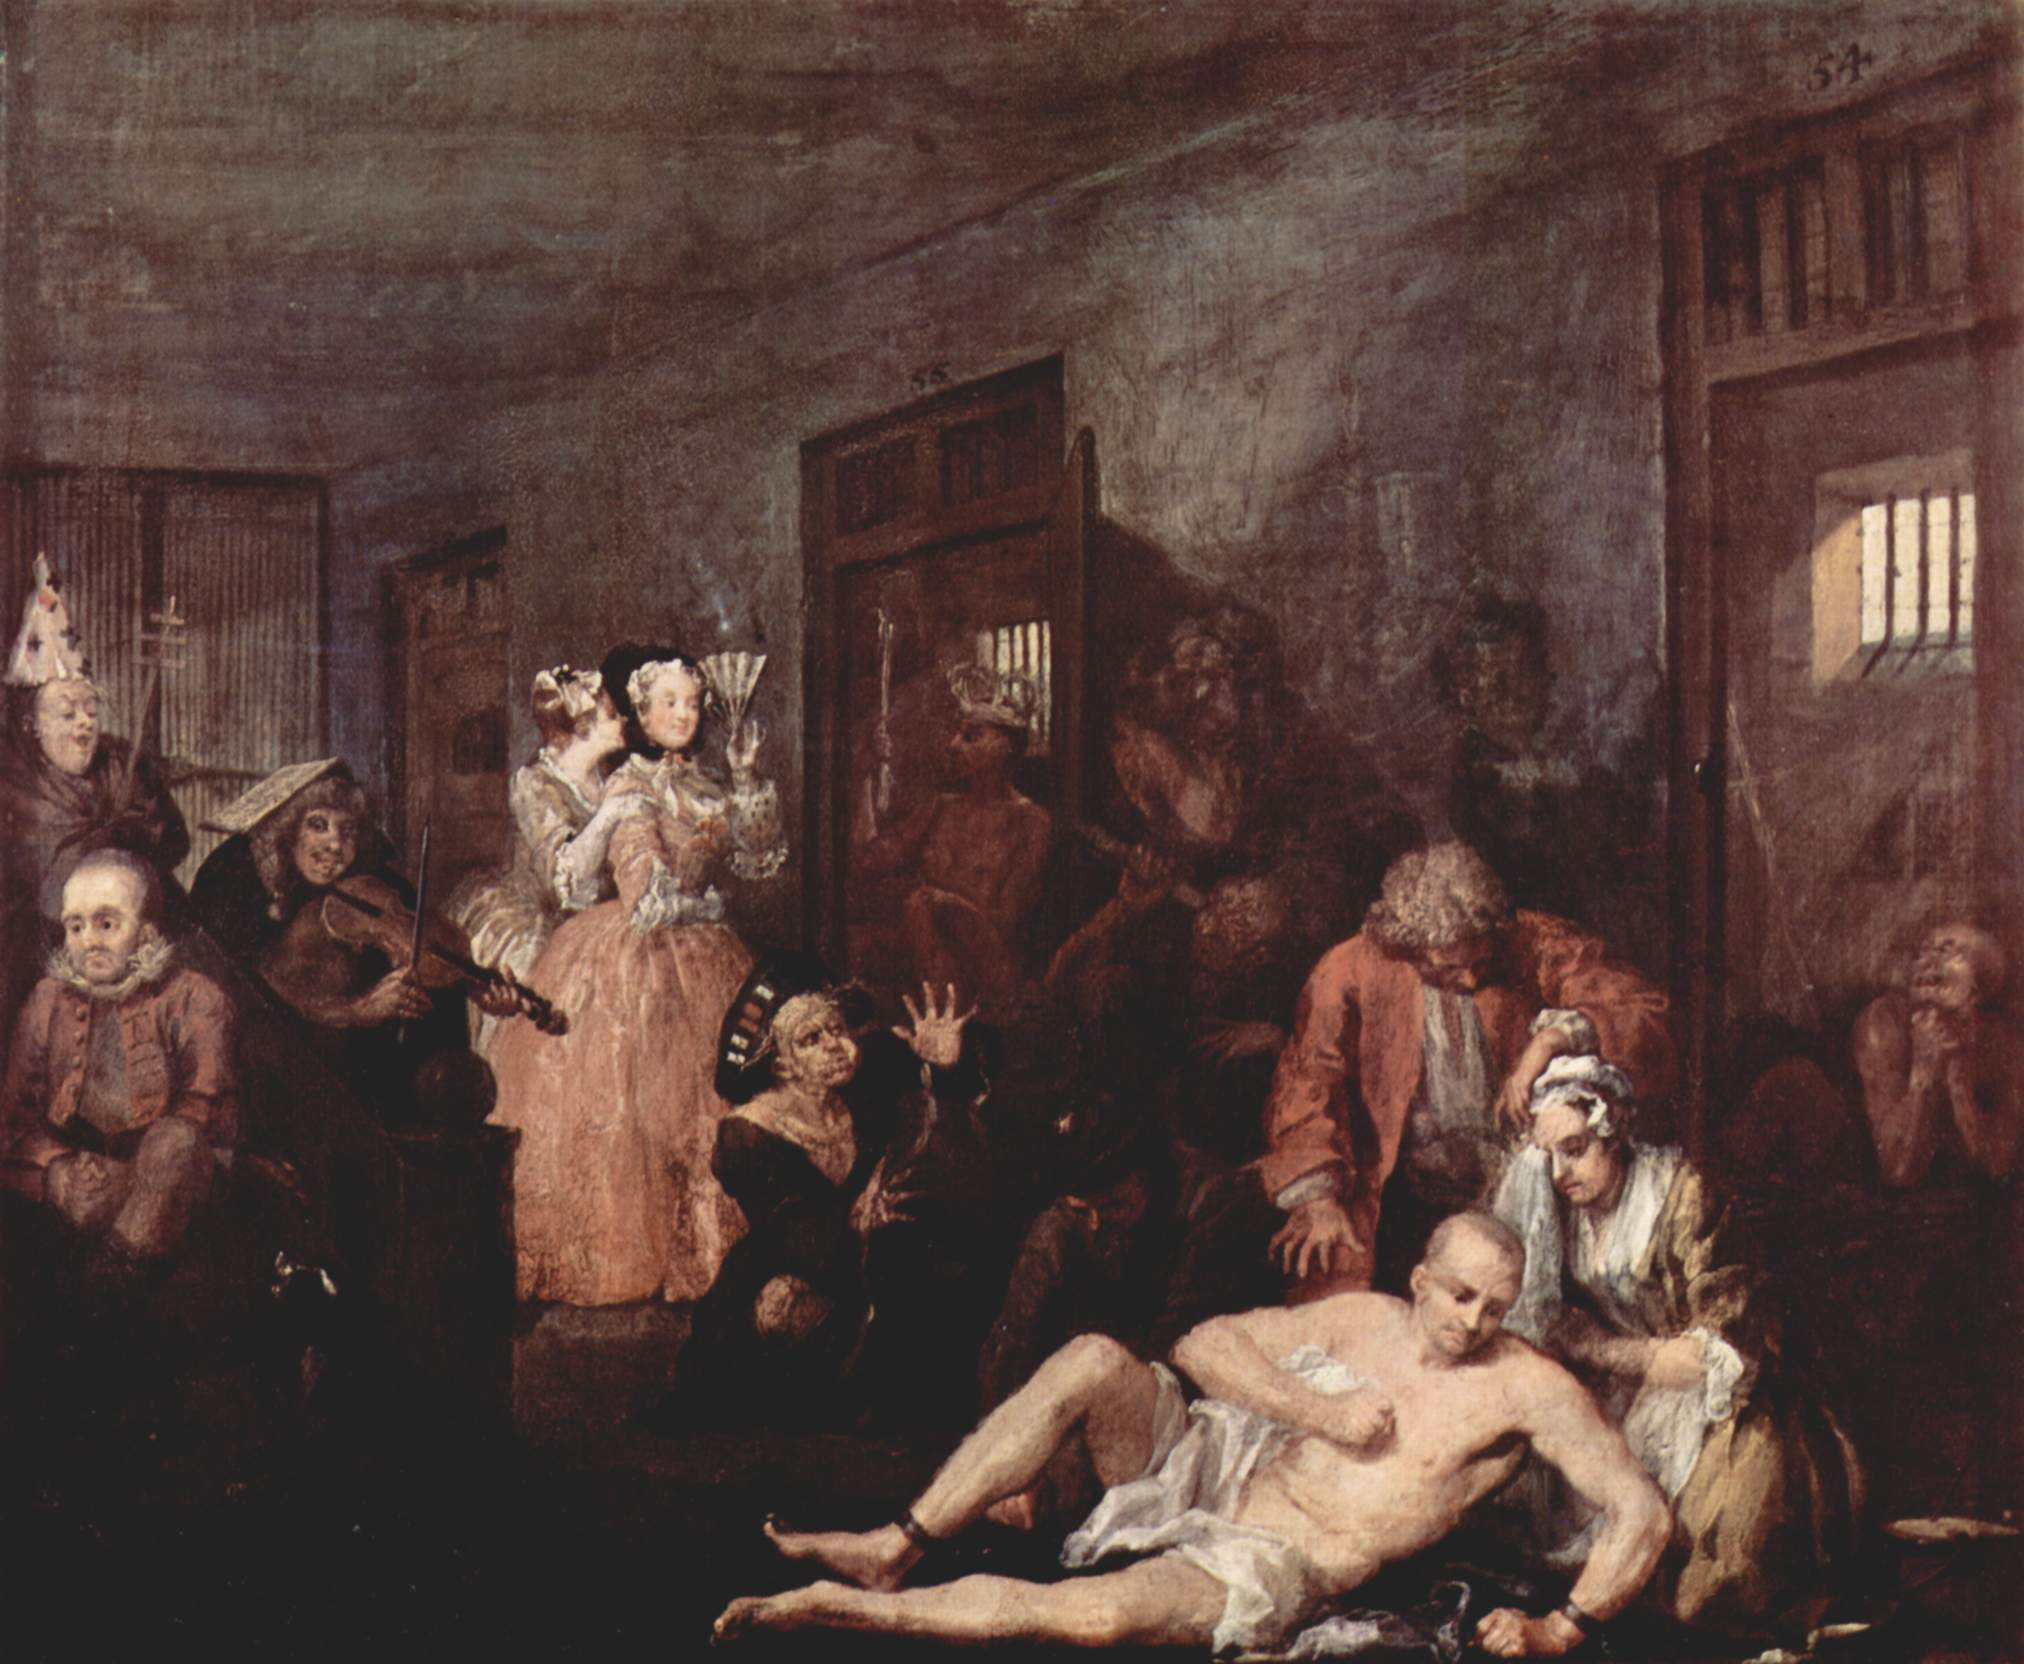 Eighteenth century Bethlem was most notably portrayed in a scene from William Hogarth's A Rake's Progress (1735), the story of a rich merchant's son, Tom Rakewell whose immoral living causes him to end up in Bethlem.